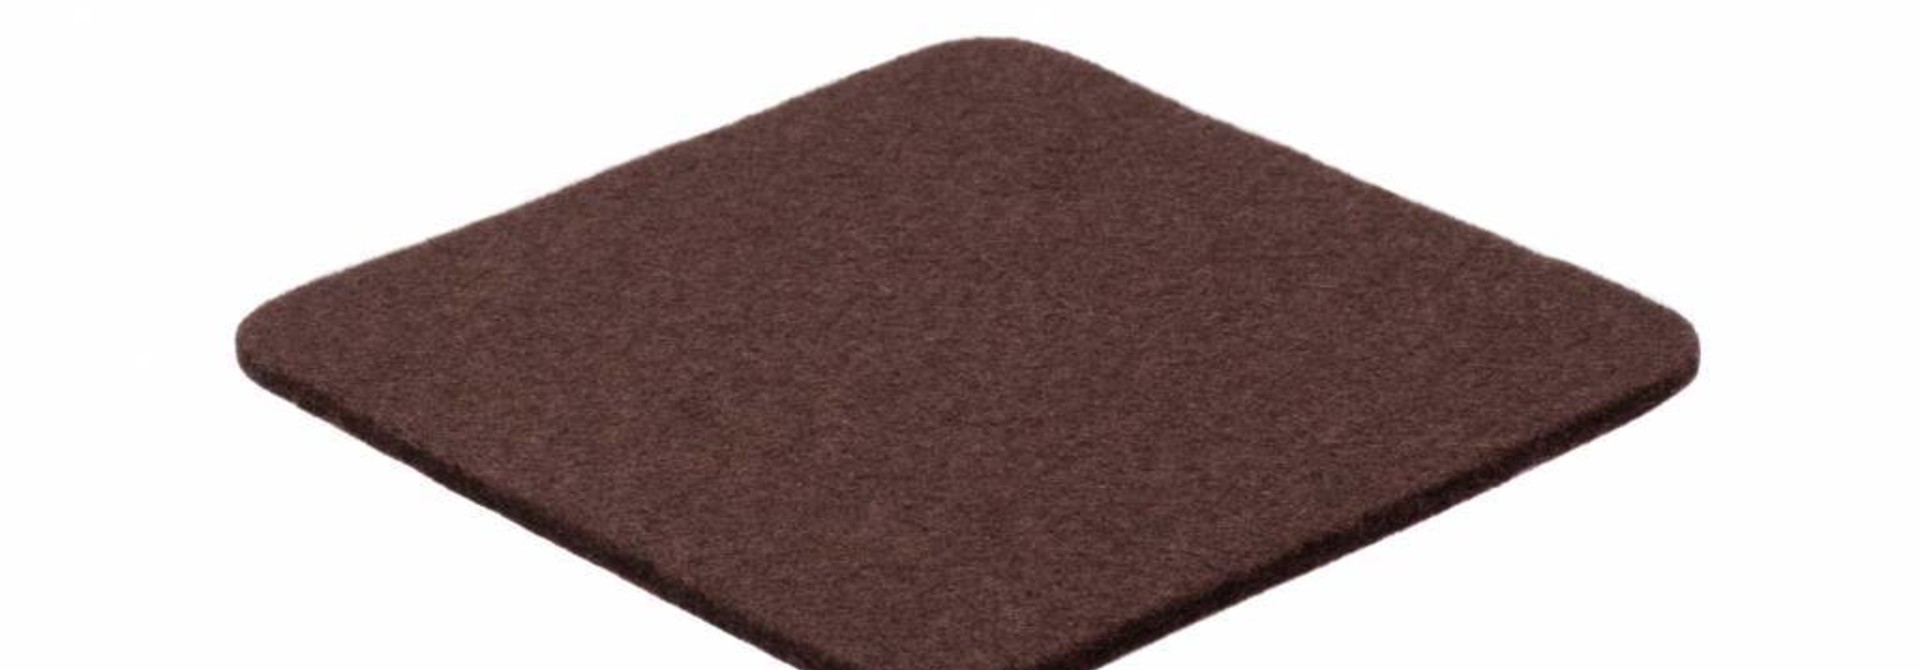 Dark-Brown felt coaster